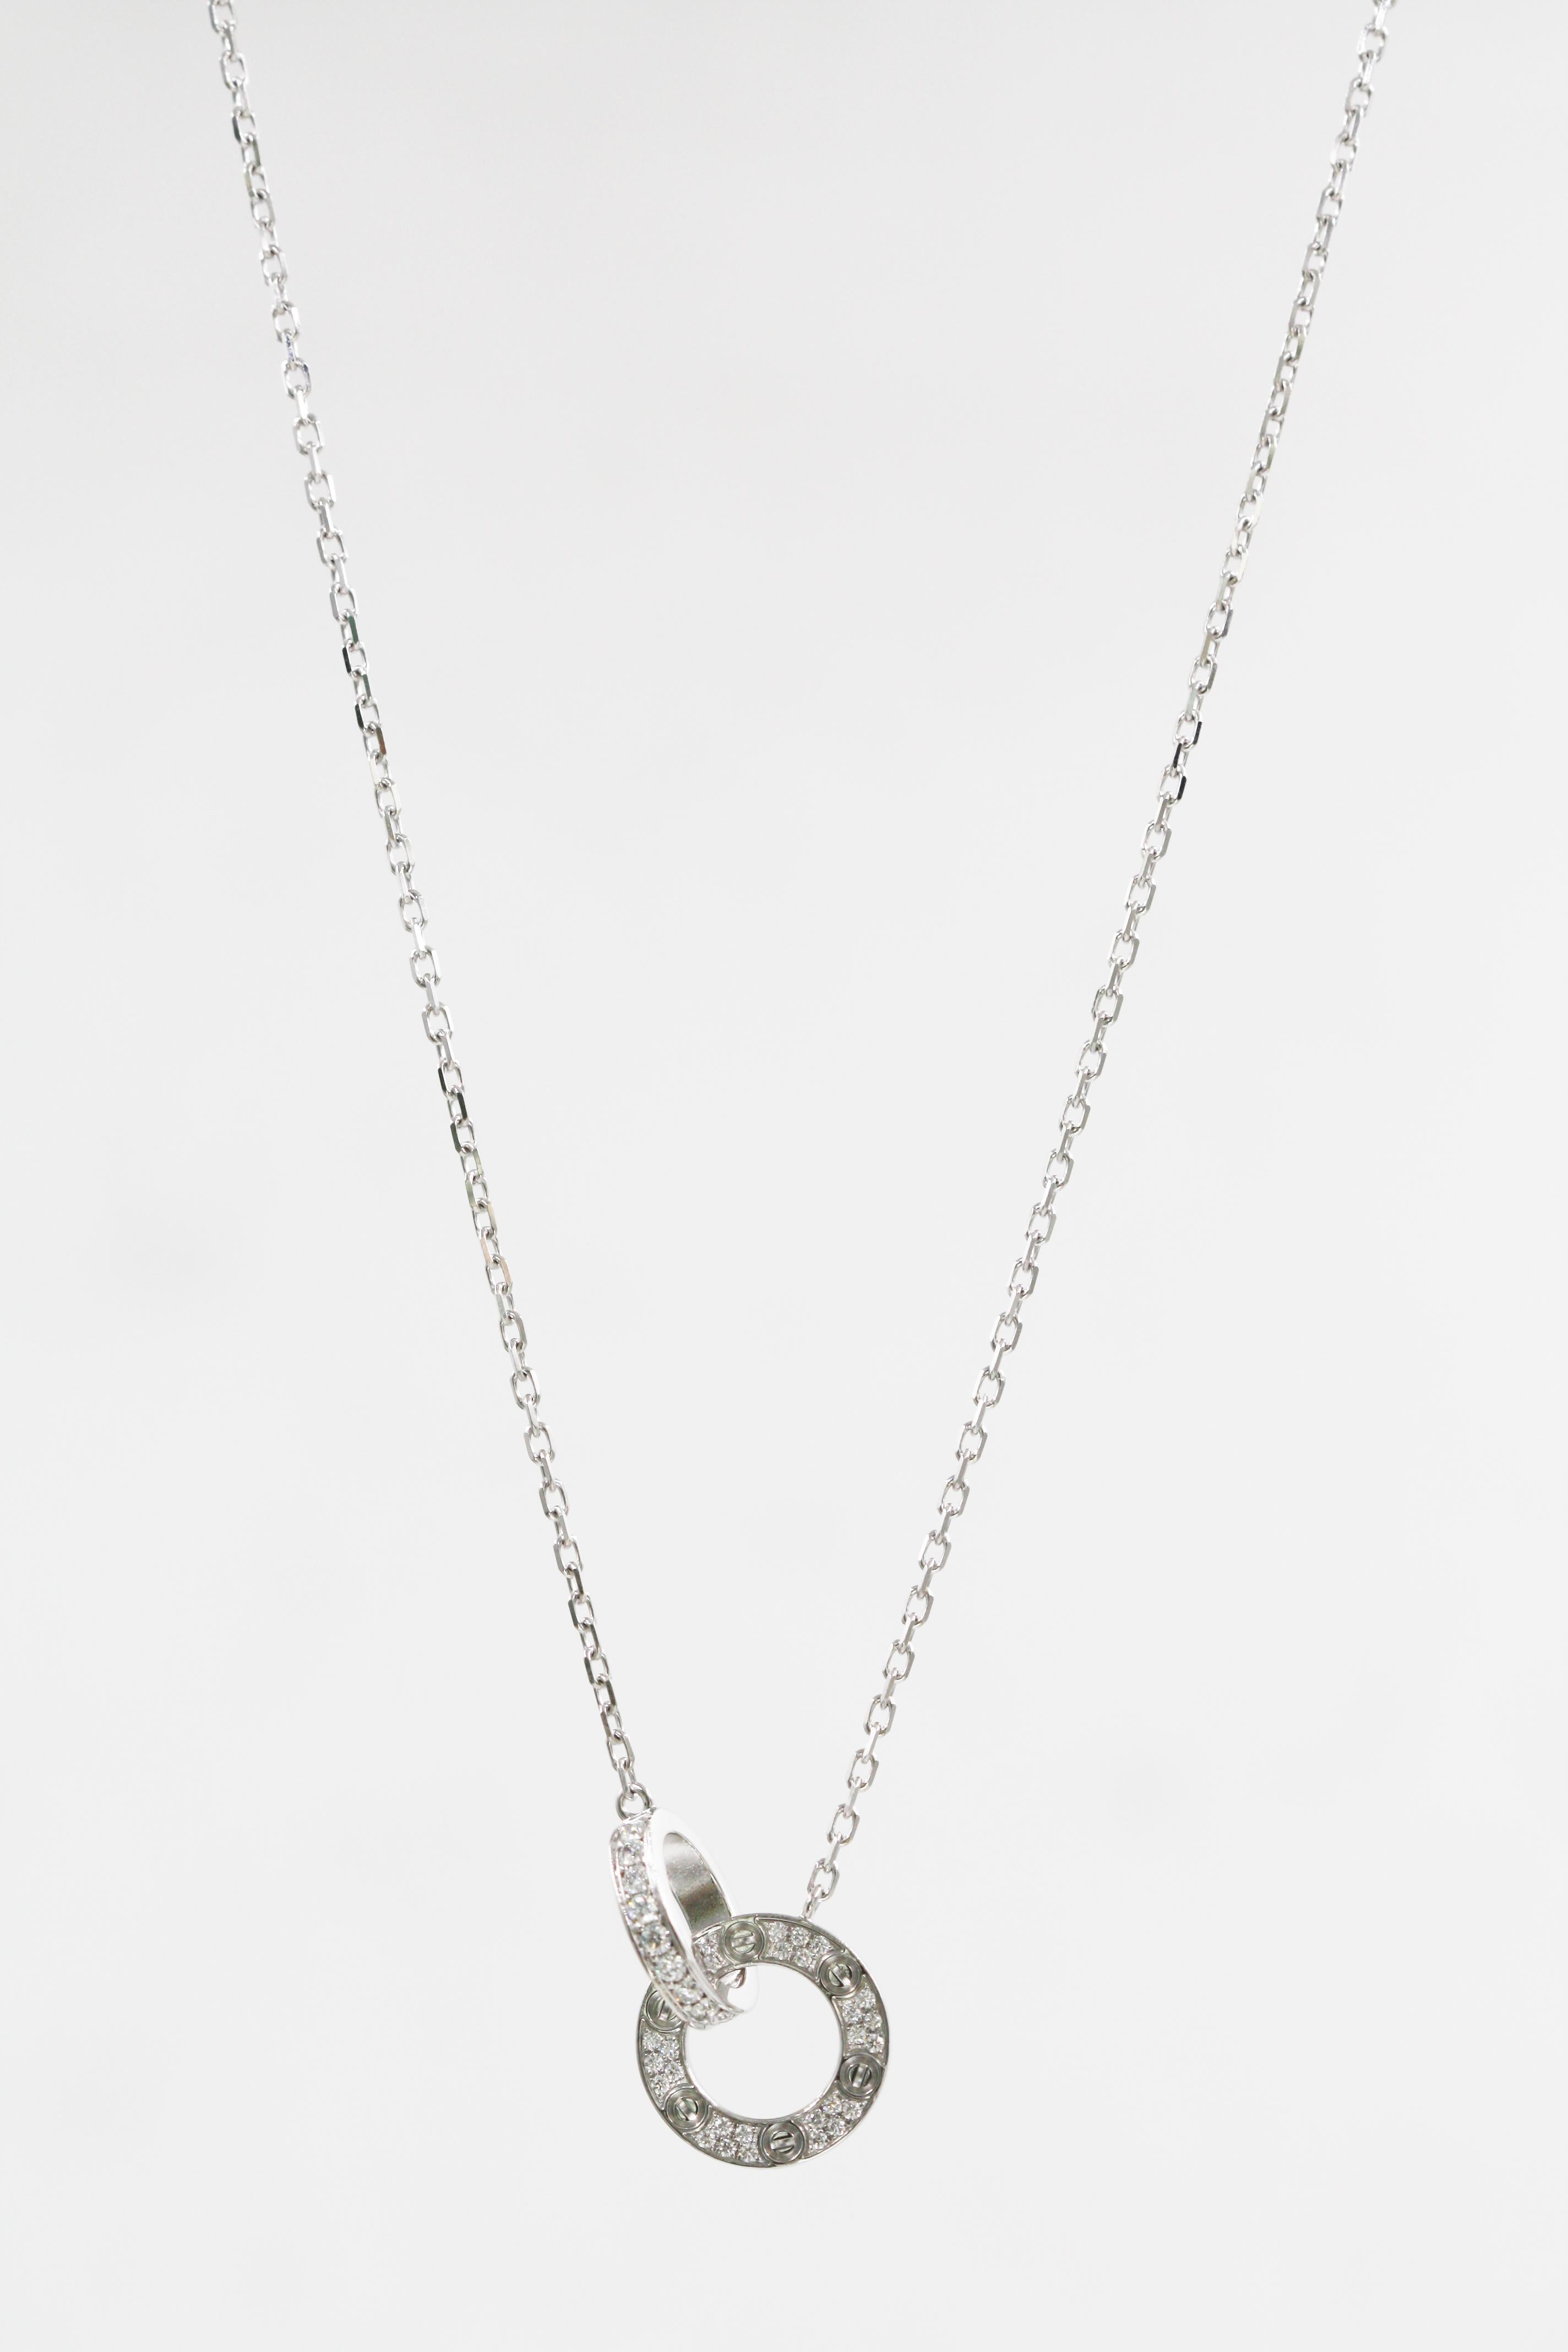 53c57b914ff0b8 Cartier 18 Karat White Gold Love Necklace, Diamond-Paved For Sale at 1stdibs